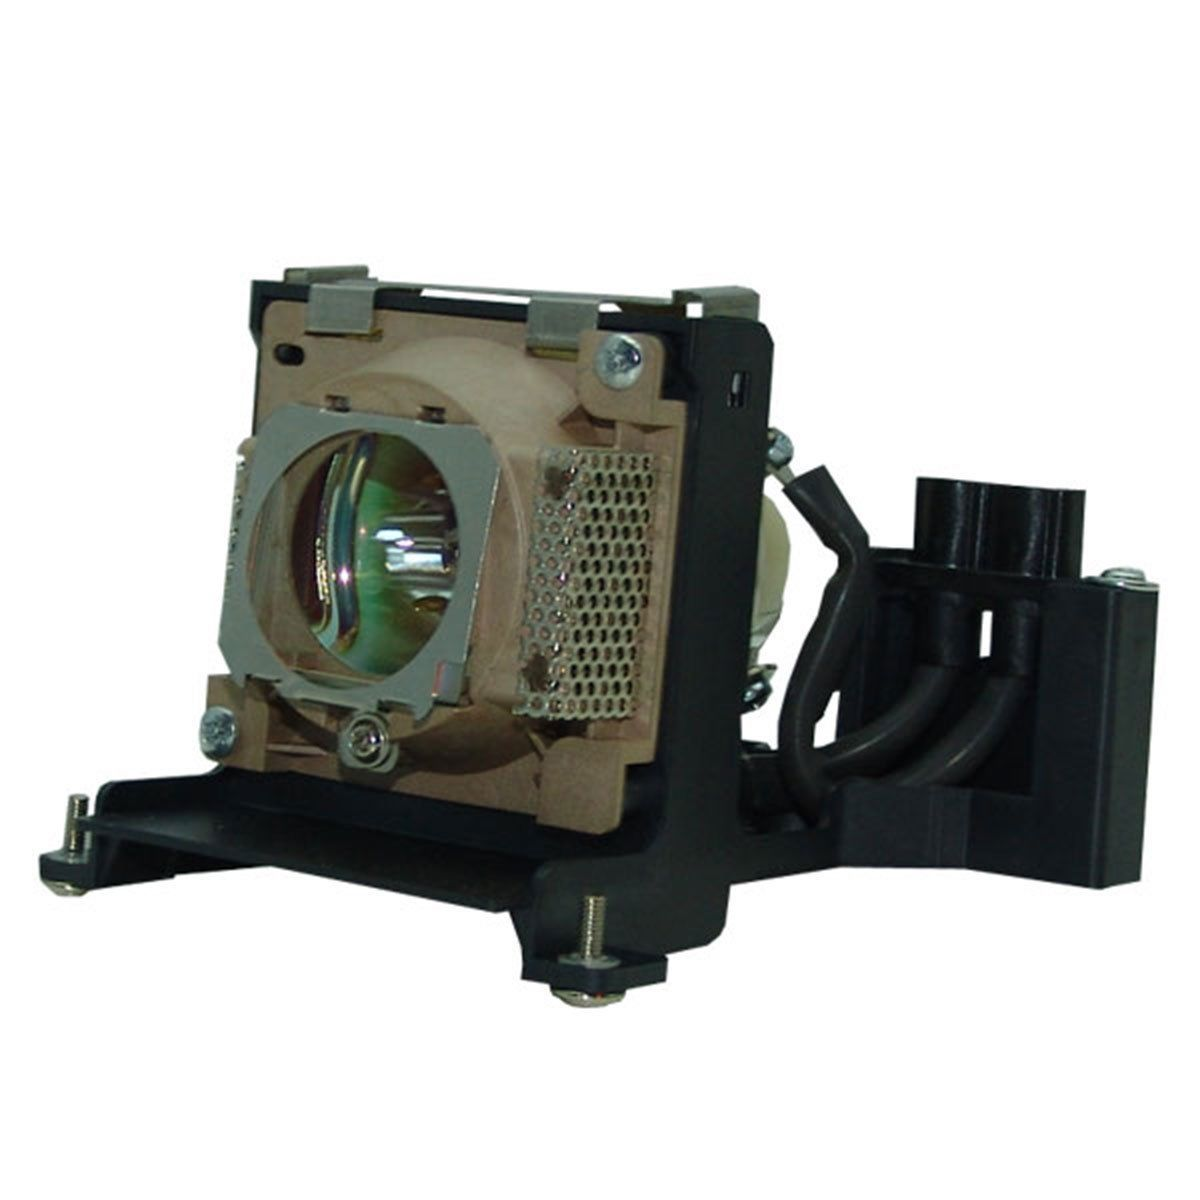 Projector Lamp Bulb EC.72101.001 for Acer PD721 with housing ec j0401 002 for acer pd116 projector lamp bulb with housing